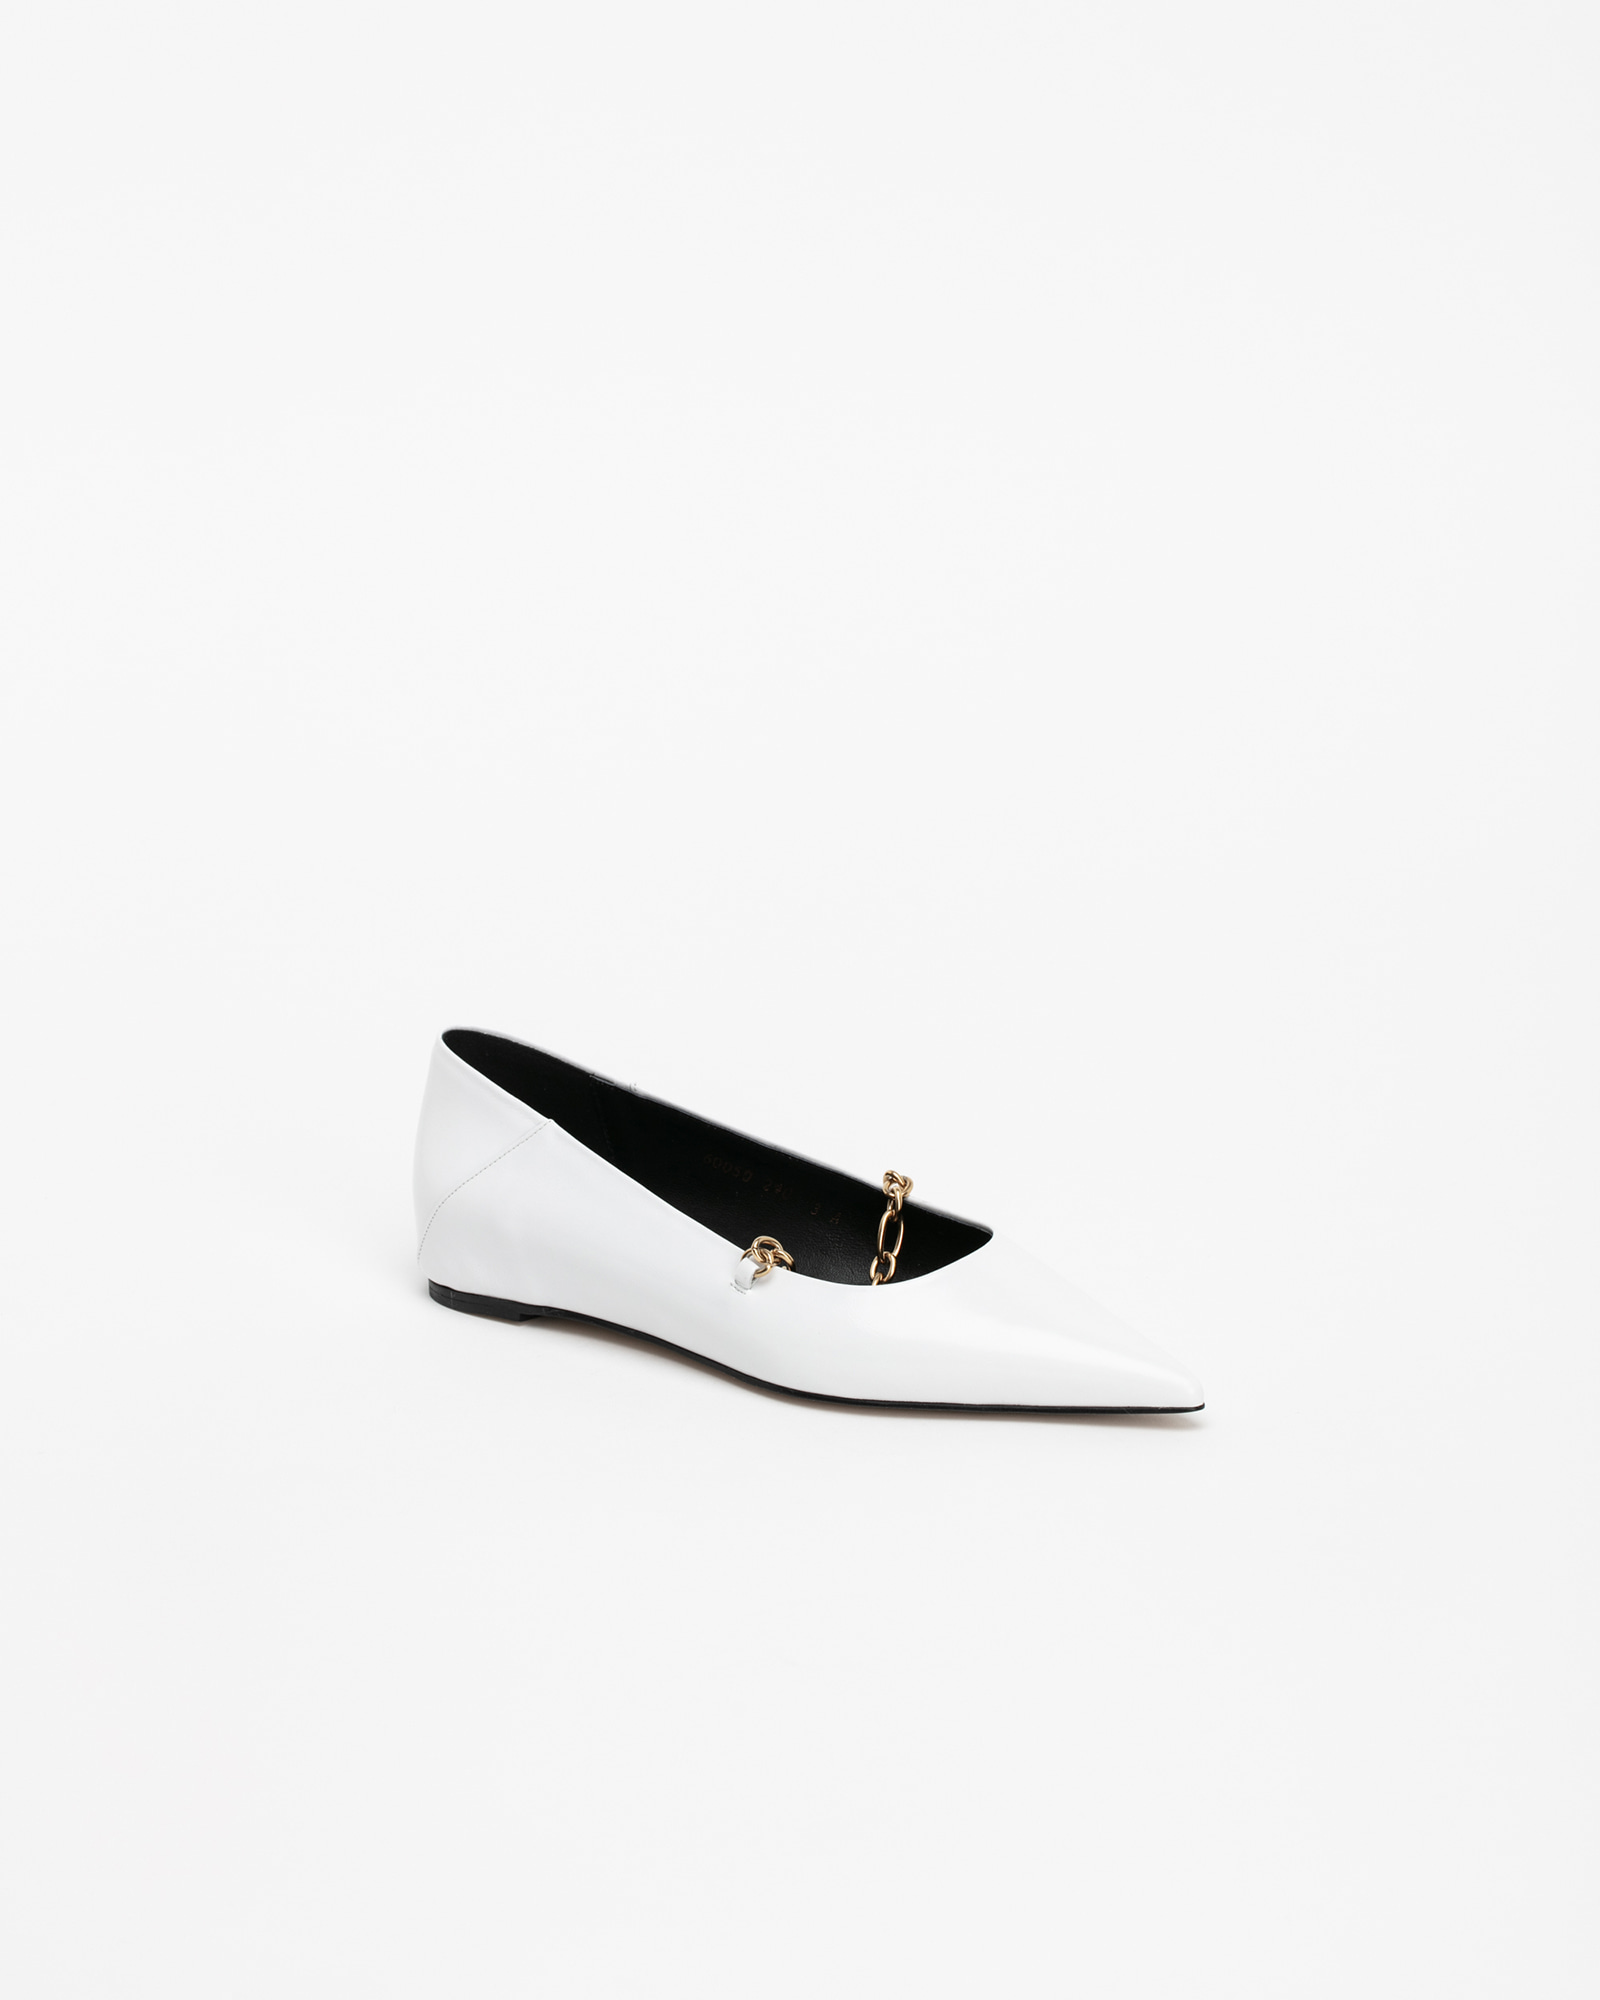 Chateau Chained Flat Shoes in White Textured Patent